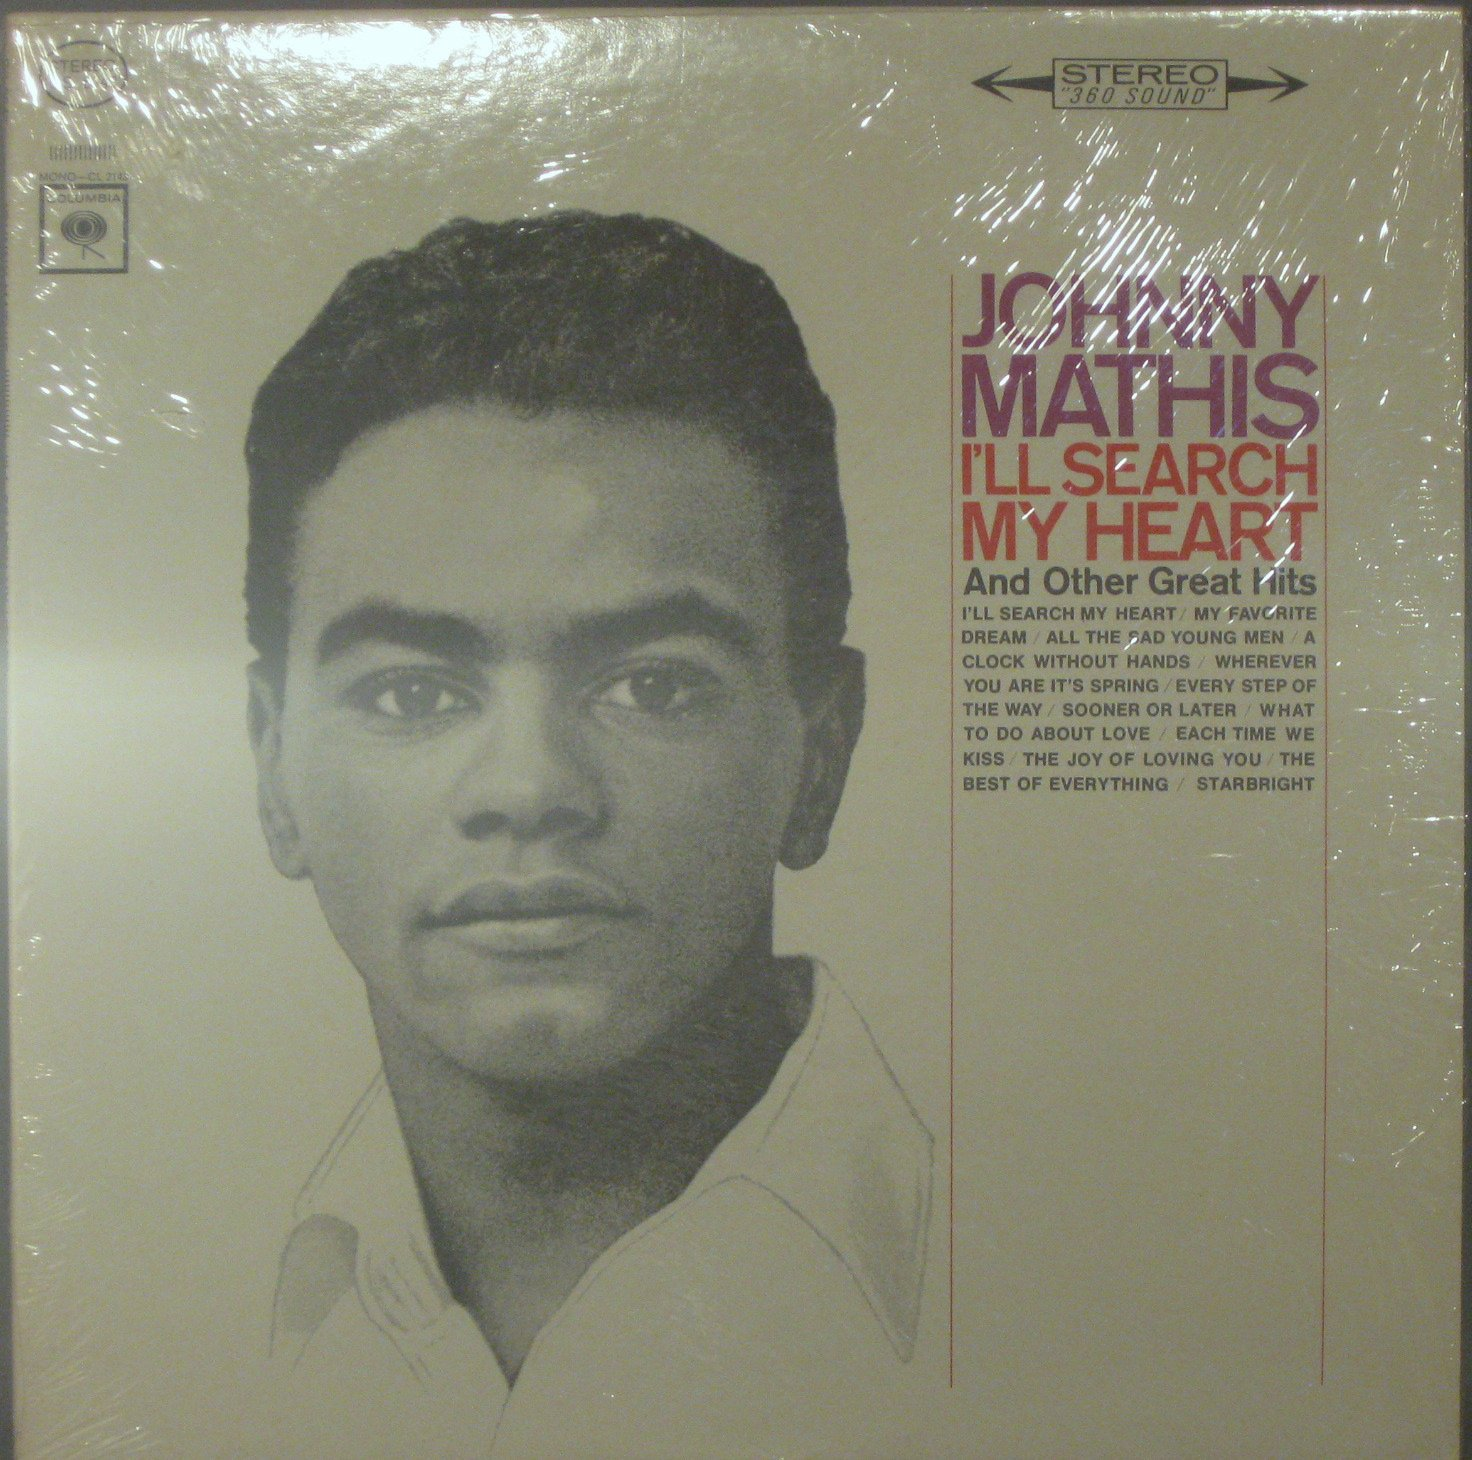 Johnny Mathis I'll Search My Heart And Other Great Hits - Vinyl LP